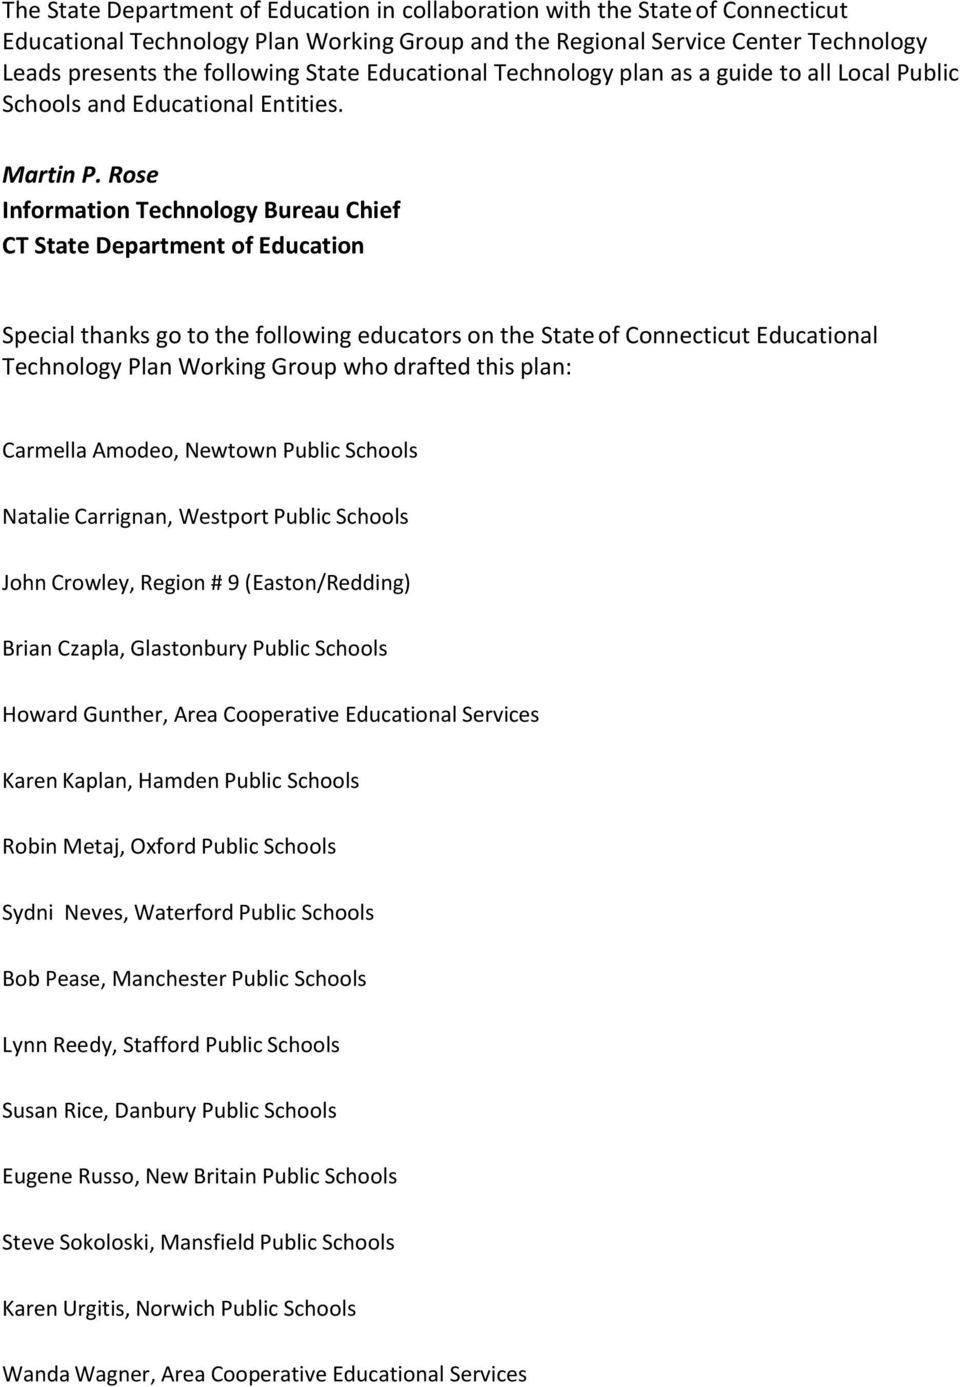 Rose Information Technology Bureau Chief CT State Department of Education Special thanks go to the following educators on the State of Connecticut Educational Technology Plan Working Group who